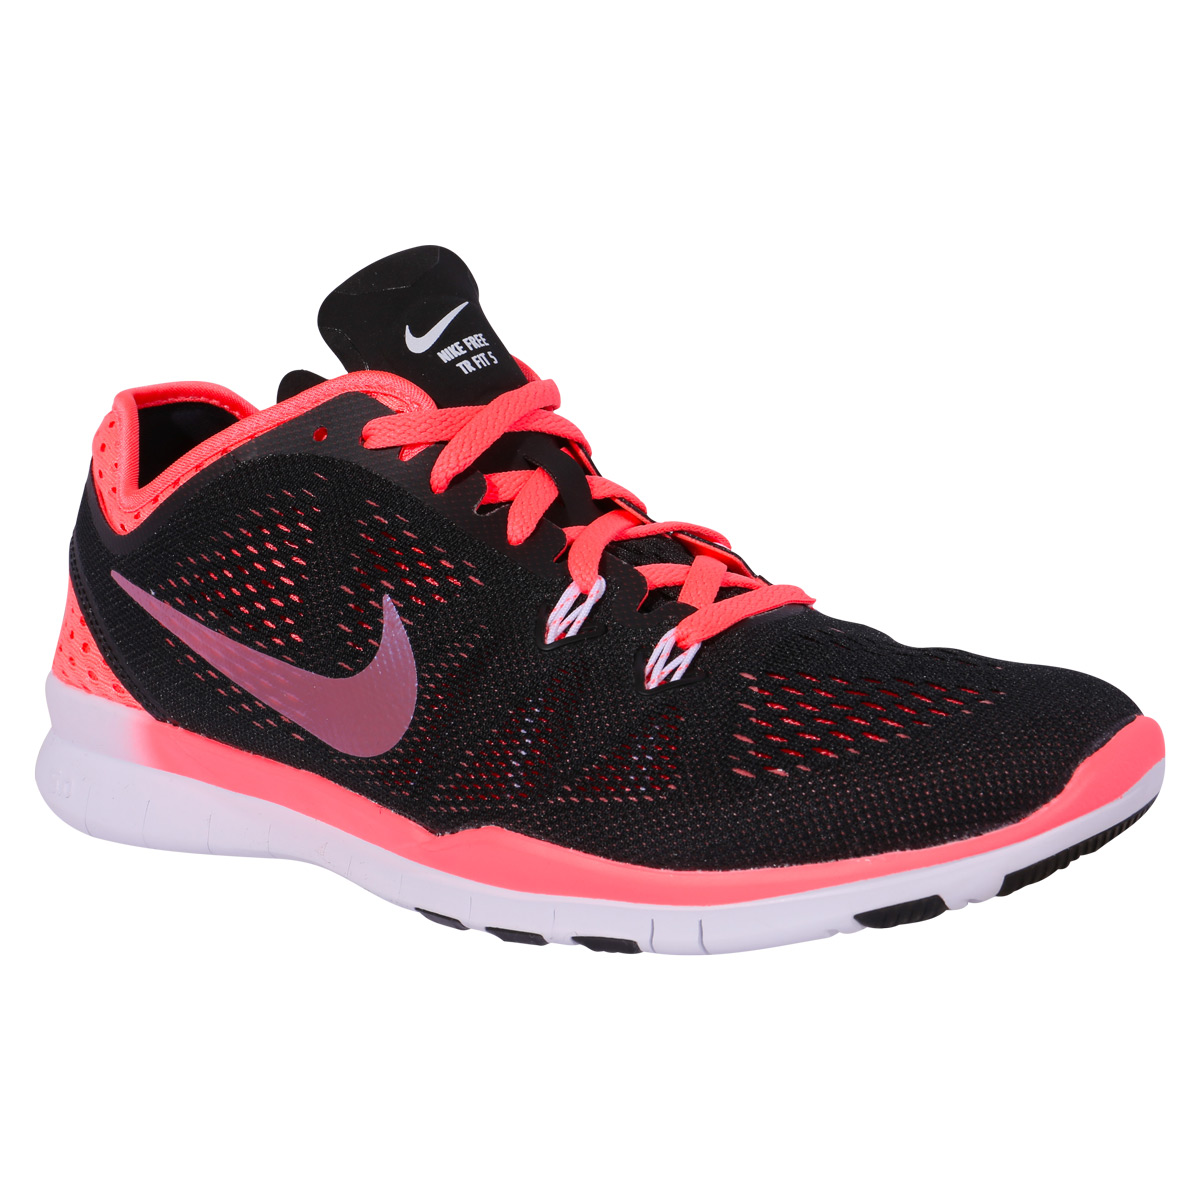 Black Nike Shoes For Women | www.imgkid.com - The Image ...